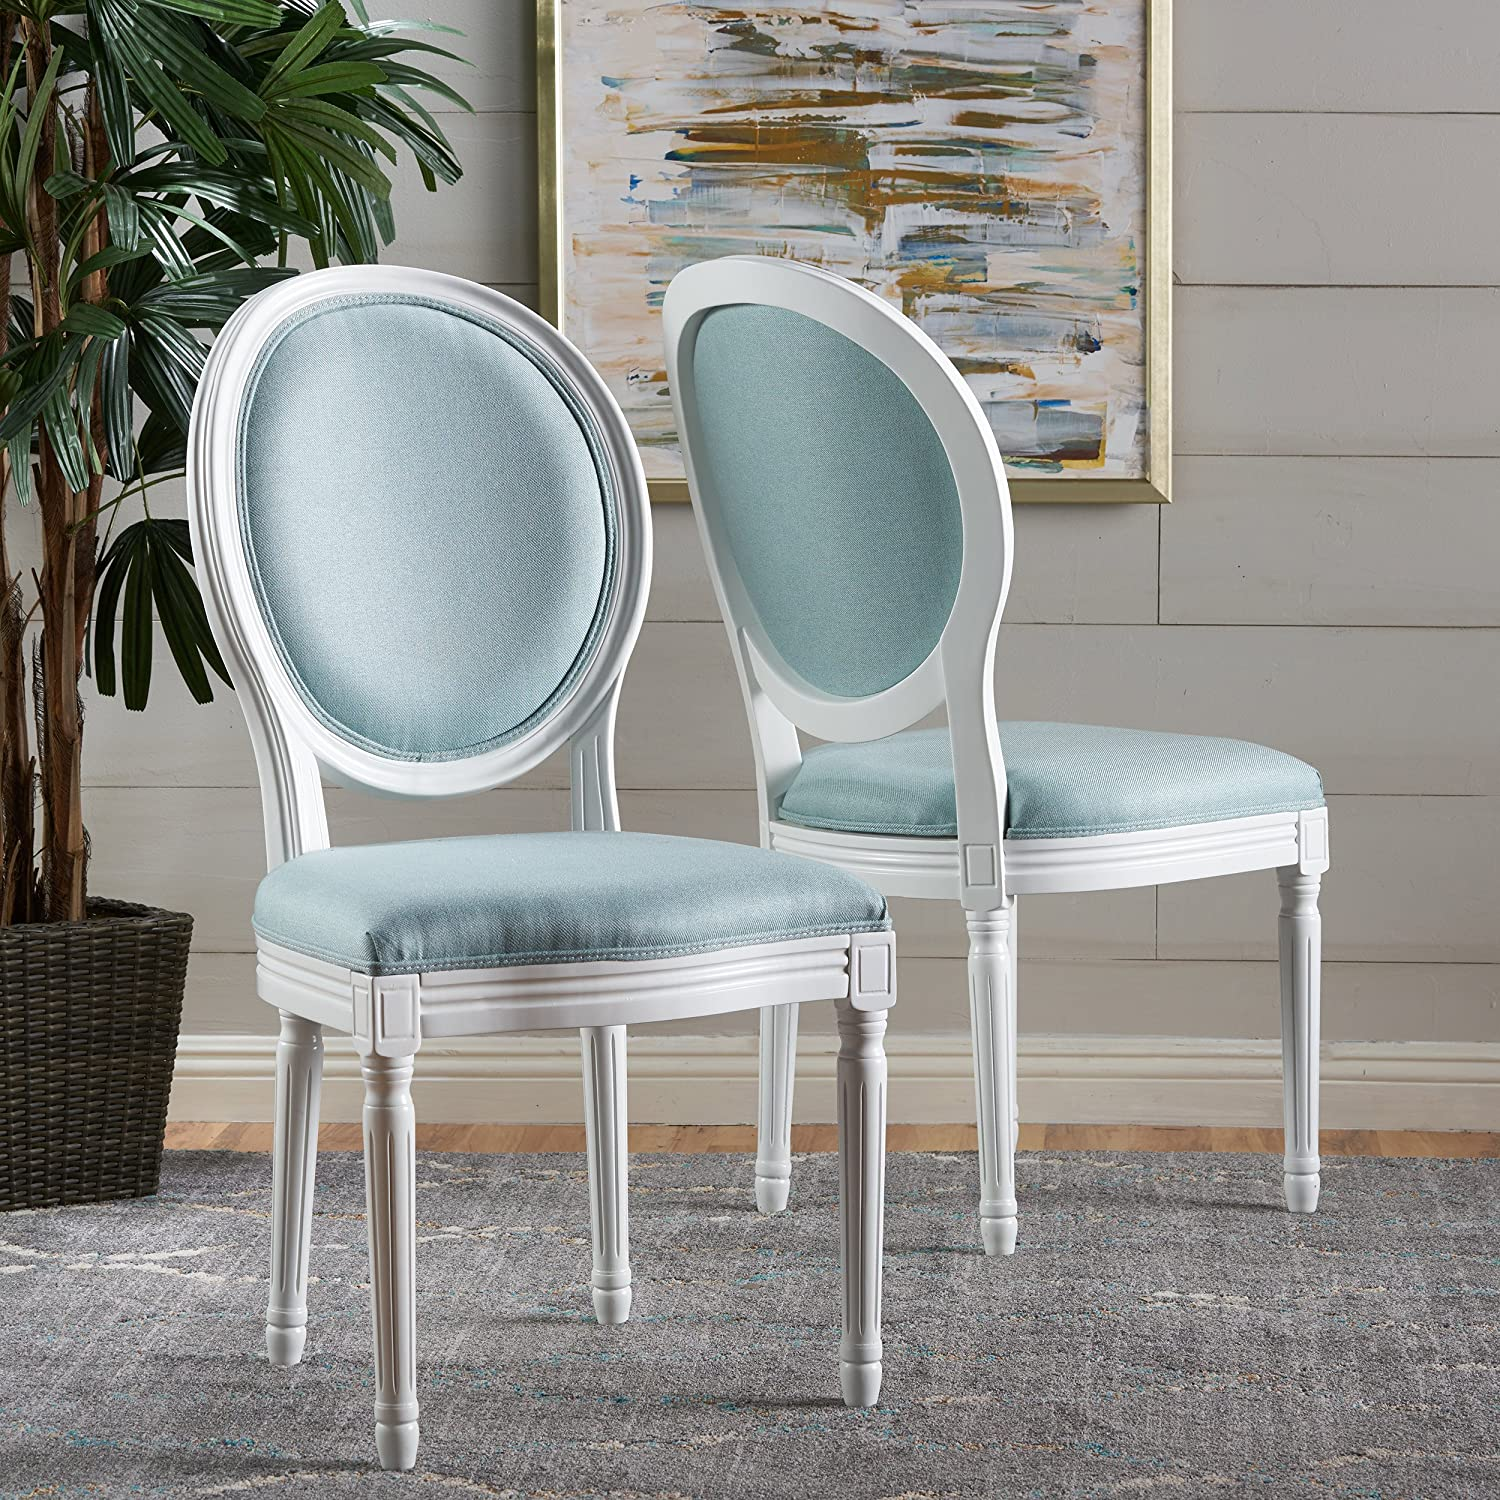 Christopher Knight Home Phinnaeus Dining Chair Set, Light Blue